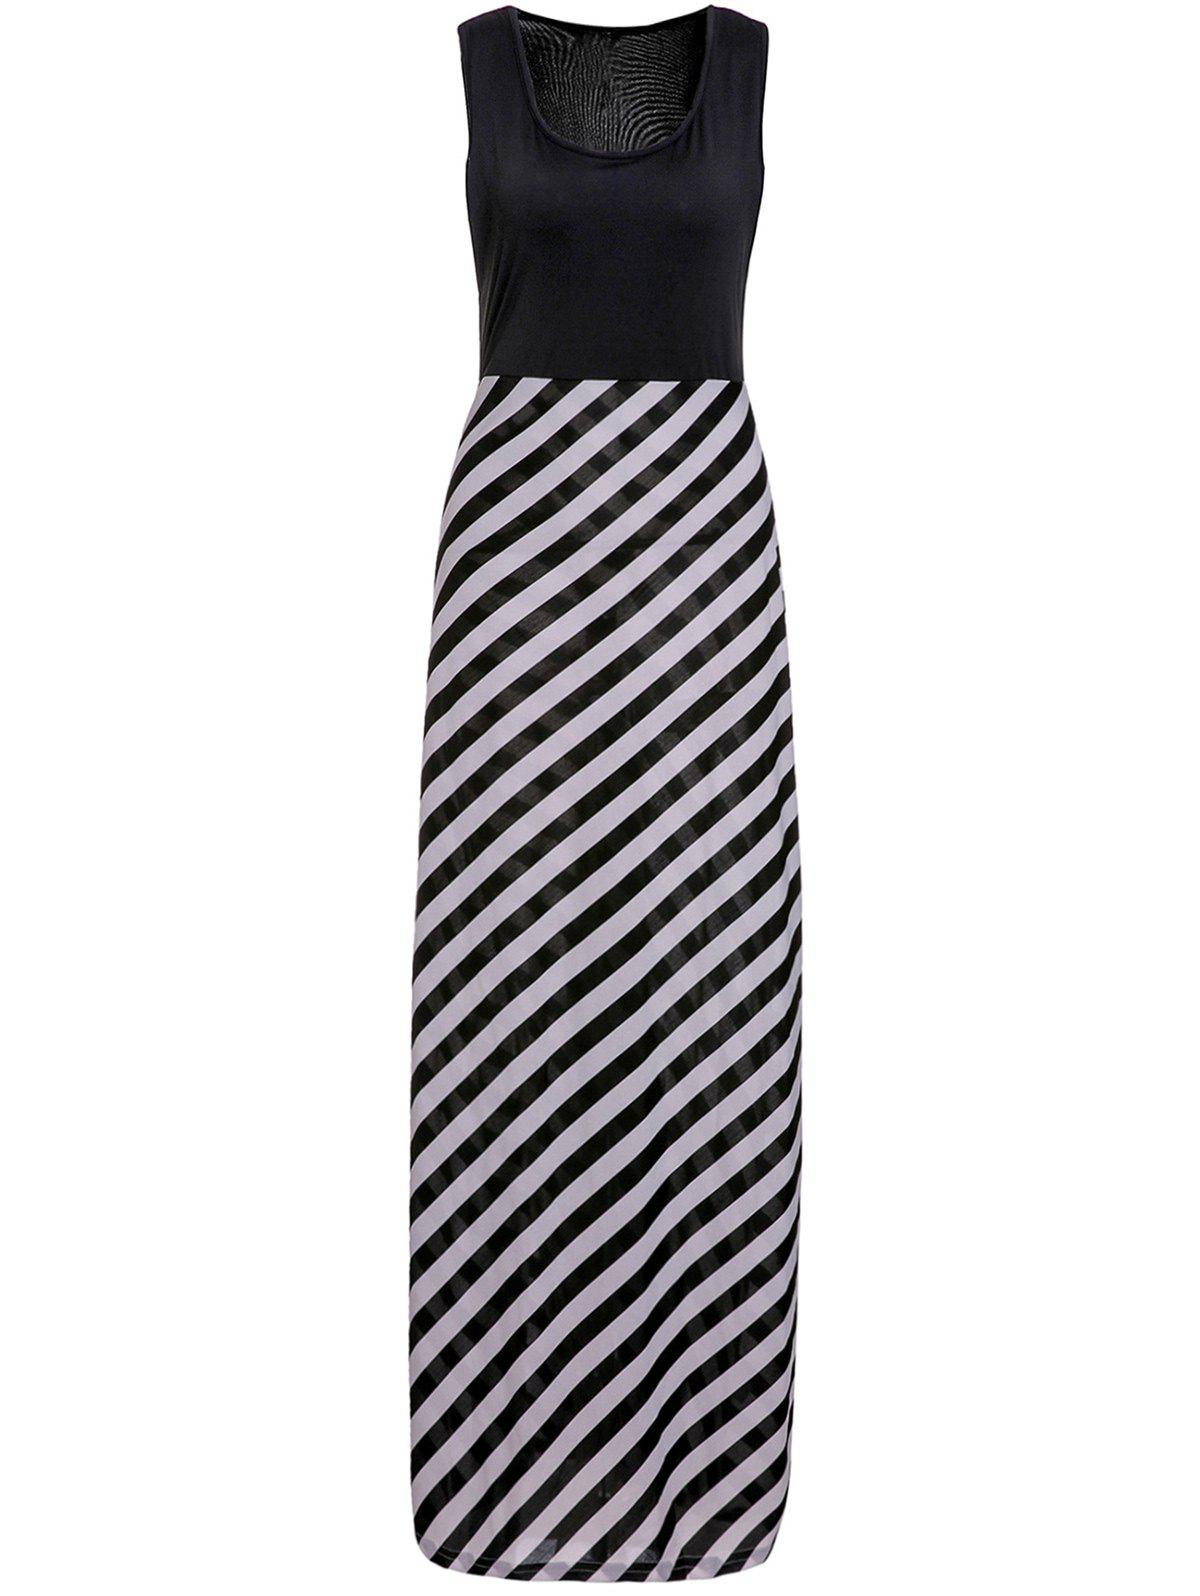 Alluring U-Neck Sleeveless Striped Spliced Women's Maxi Dress - WHITE/BLACK XL